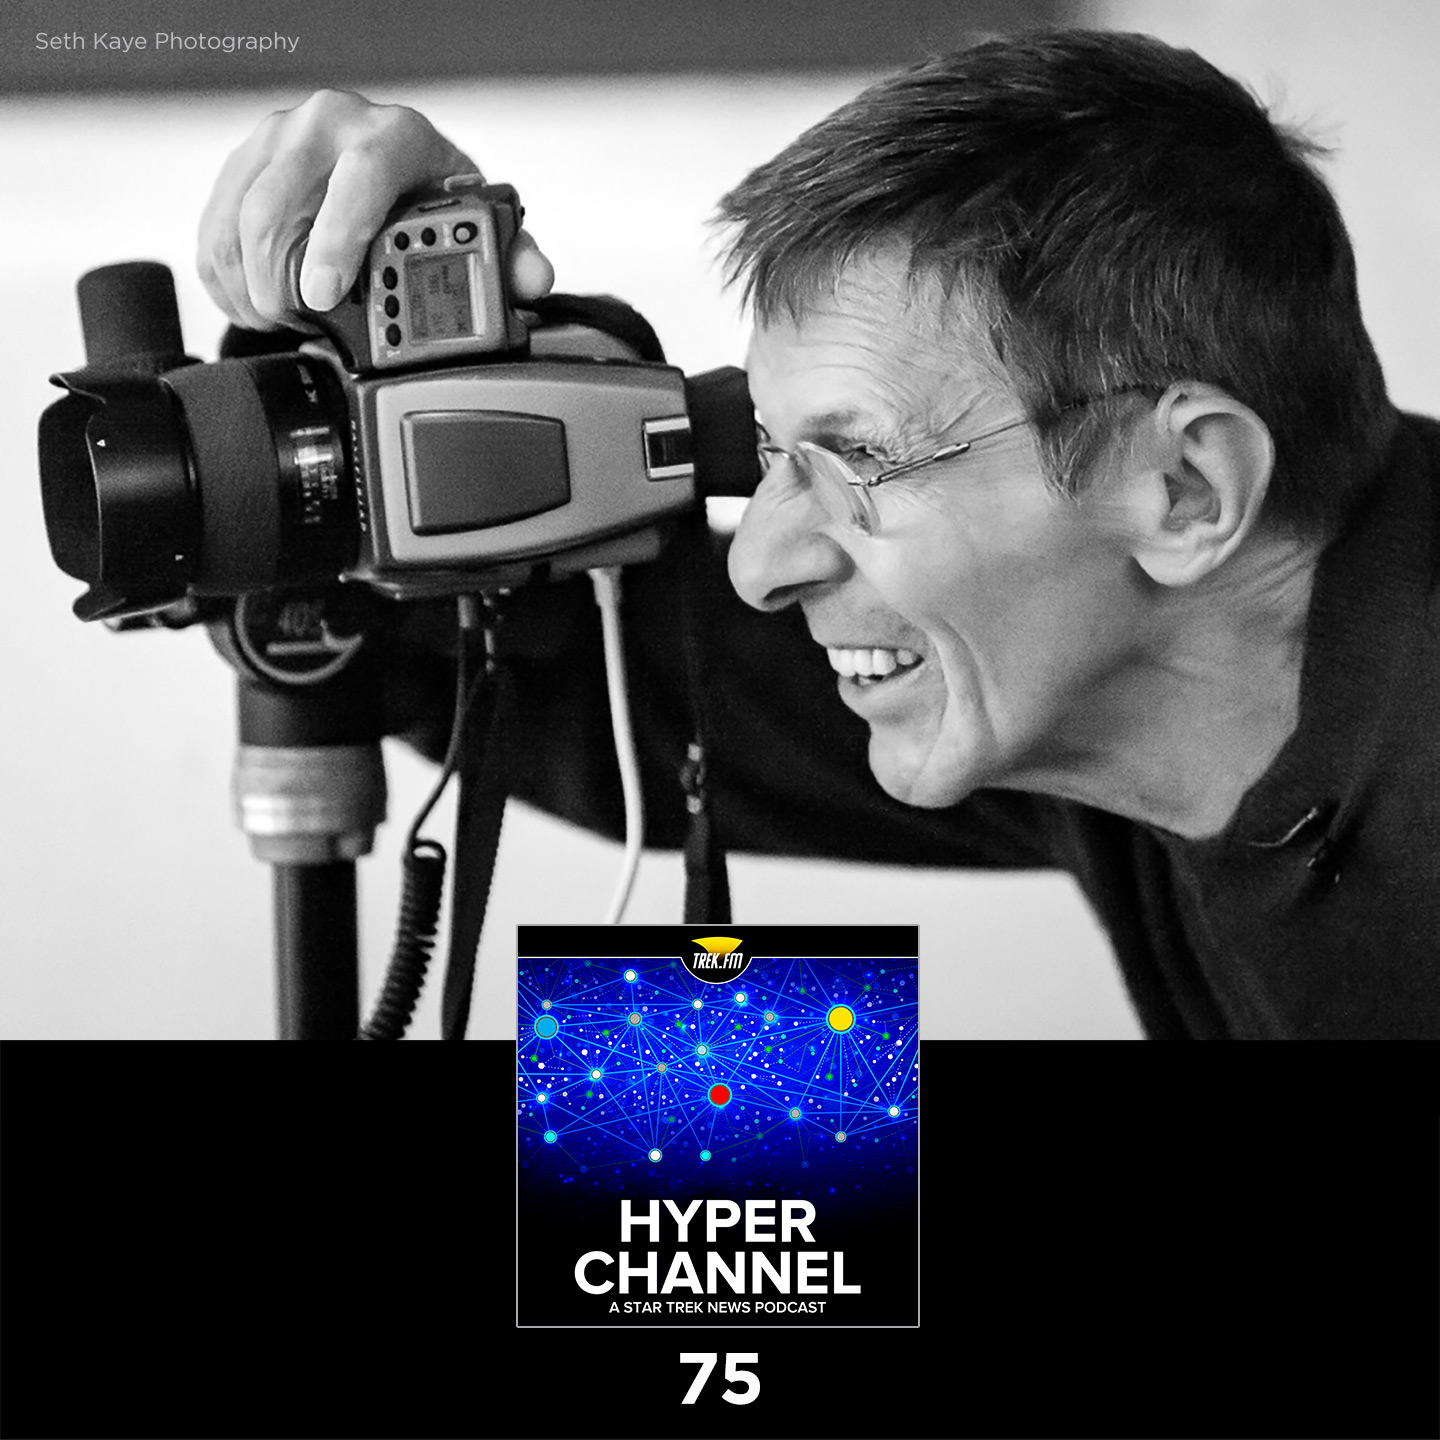 Hyperchannel 75: The Other Side of the Lens